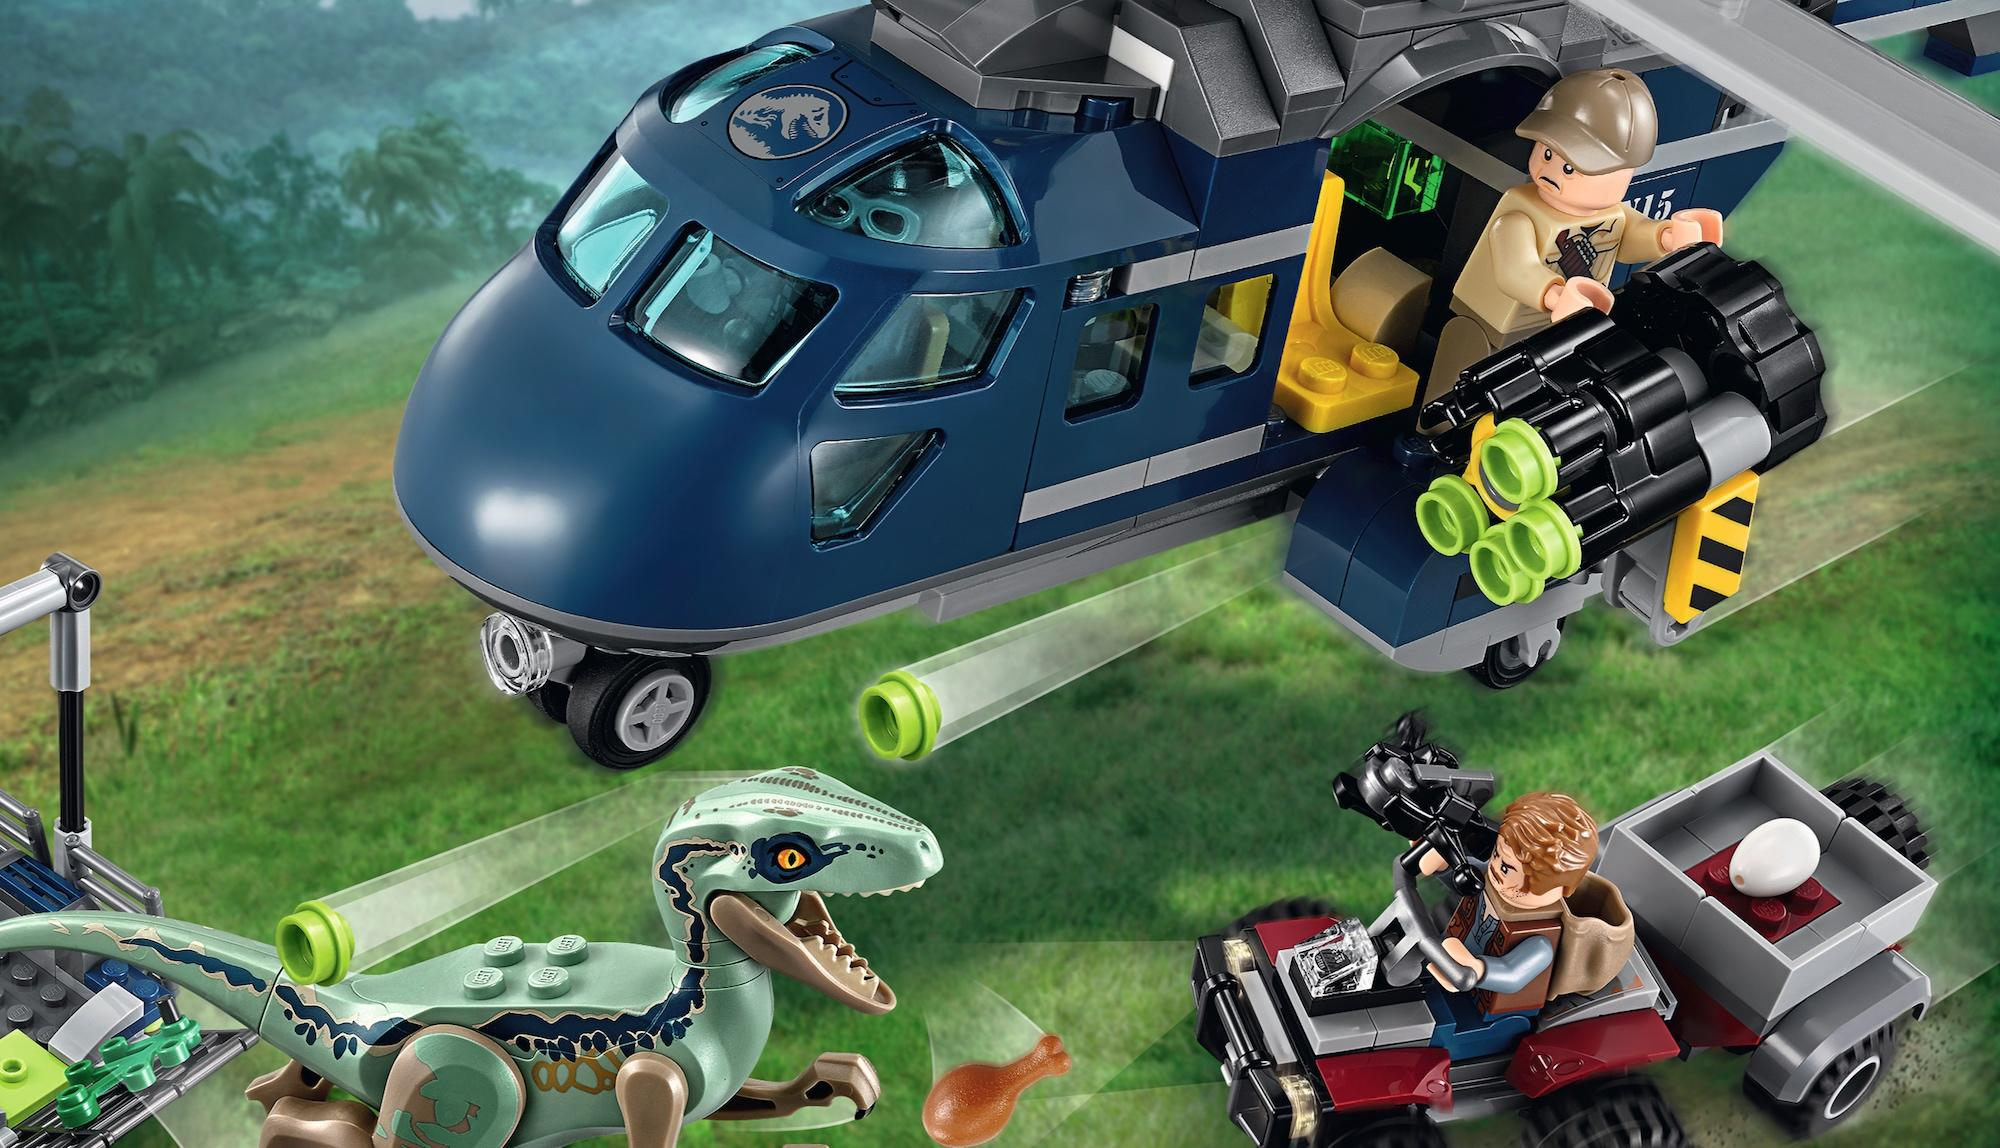 rebuild 2 helicopter with Lego Sets Offer Peek Inside Jurassic World Fallen Kingdom Exclusive 123013187 on Ultra Slim Pu Leather Case Cover Cover For 2016 New Kobo Aura Aura Edition 2 6 Ereader Protective Case Cover Protector Film Stylus also Nose Wheelsteering Systems Nosewheel On besides Lego Creator Transport Truck 5765 further Index further 4005 13426.